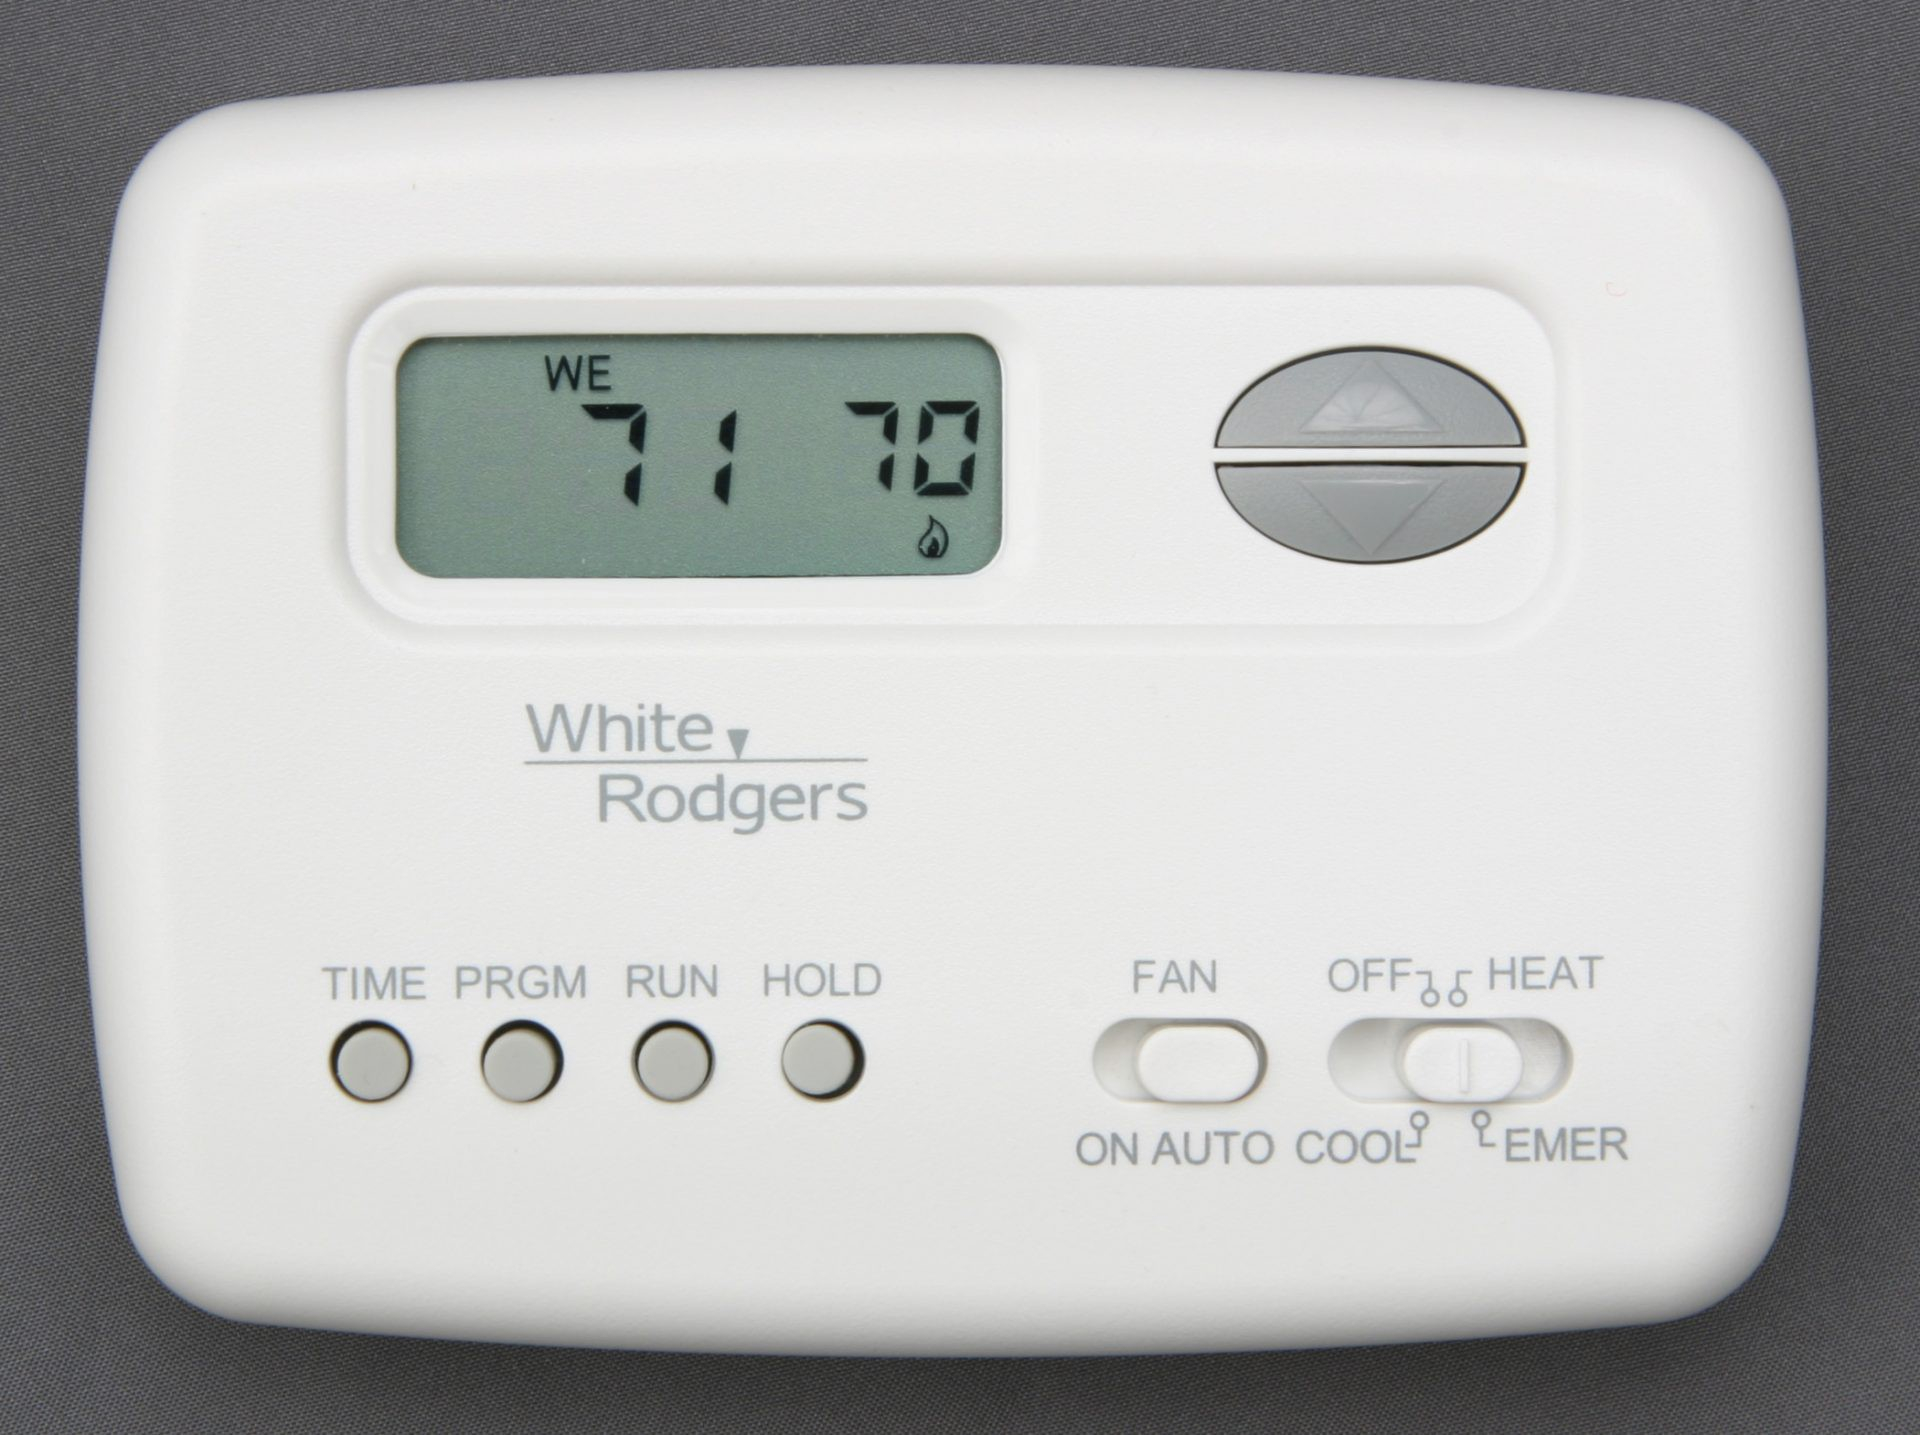 white rodgers thermostat wiring diagram 1f79 Collection-White Rodgers thermostat Wiring Diagram Lovely White Rodgers thermostat Wiring Diagram Best Diagram Download 3-j